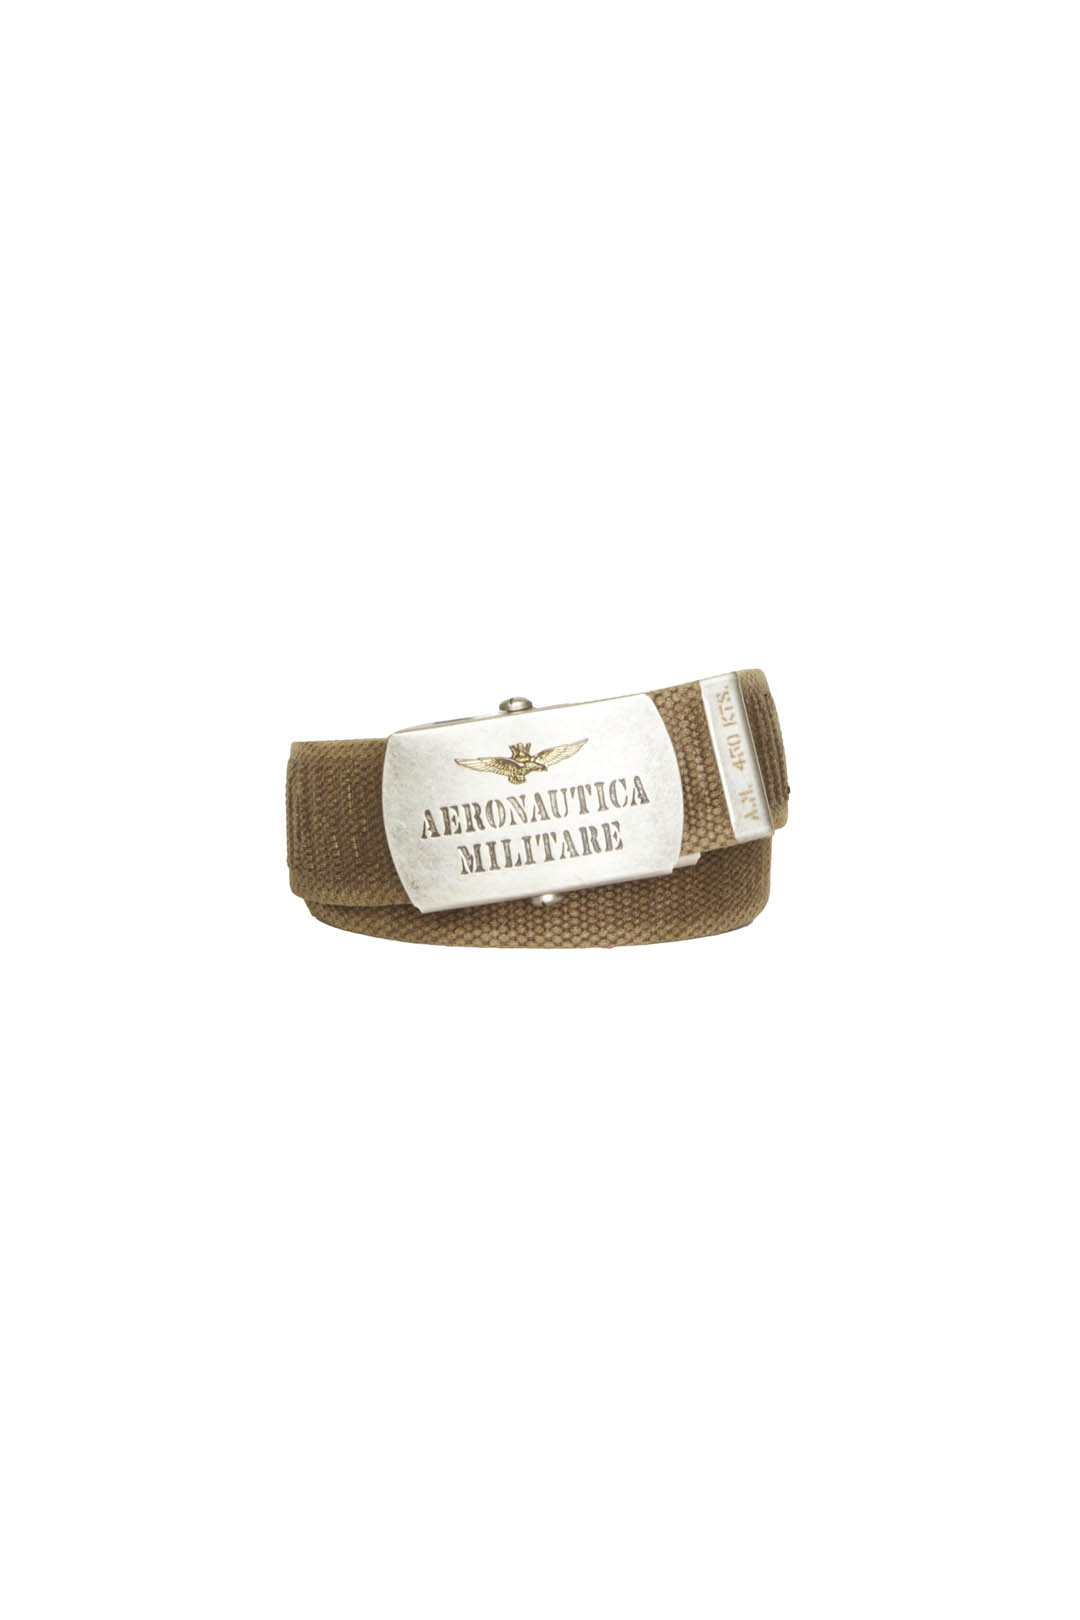 Cotton belt with metal plate buckle